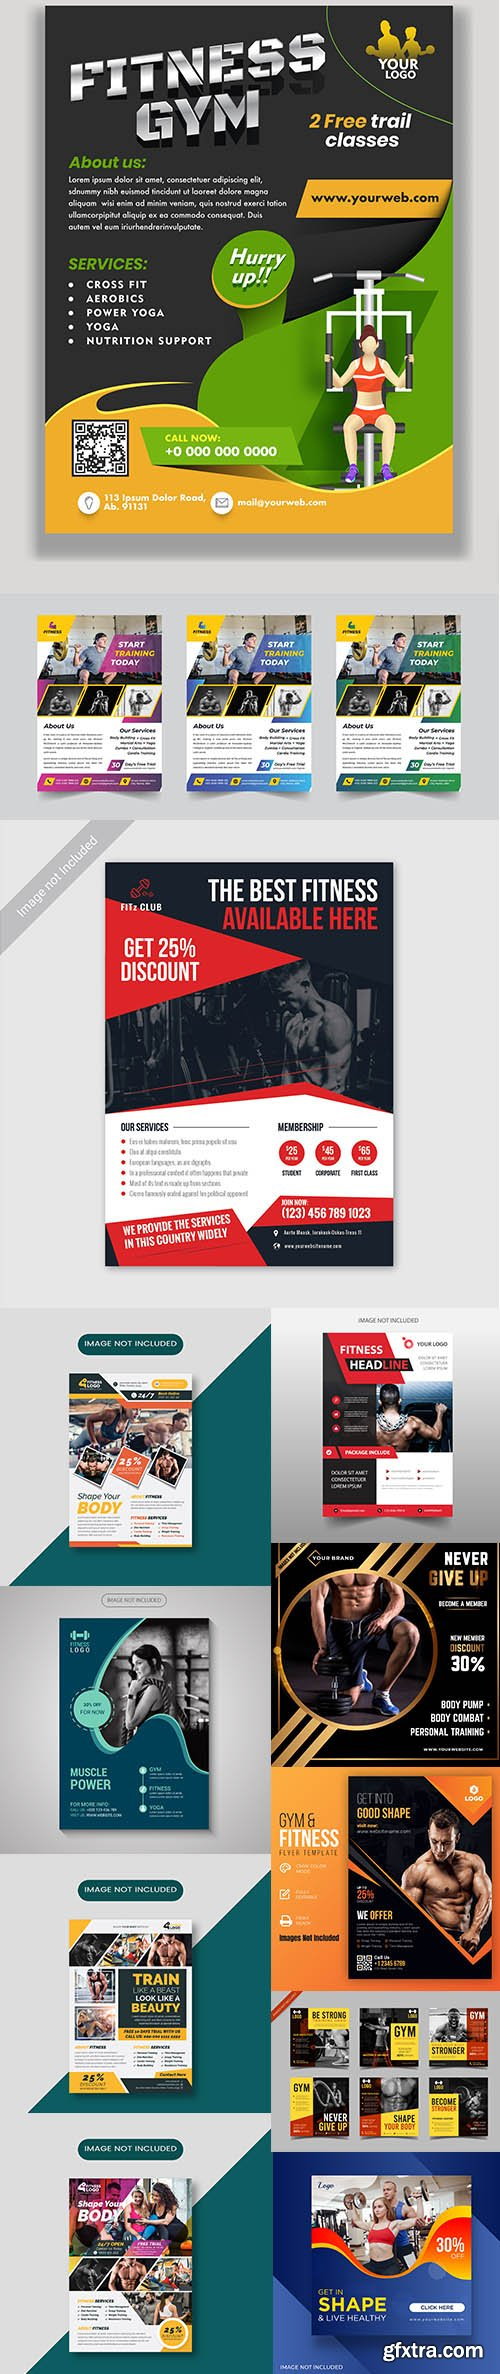 Gym and fitness flyer template collection Vol 5